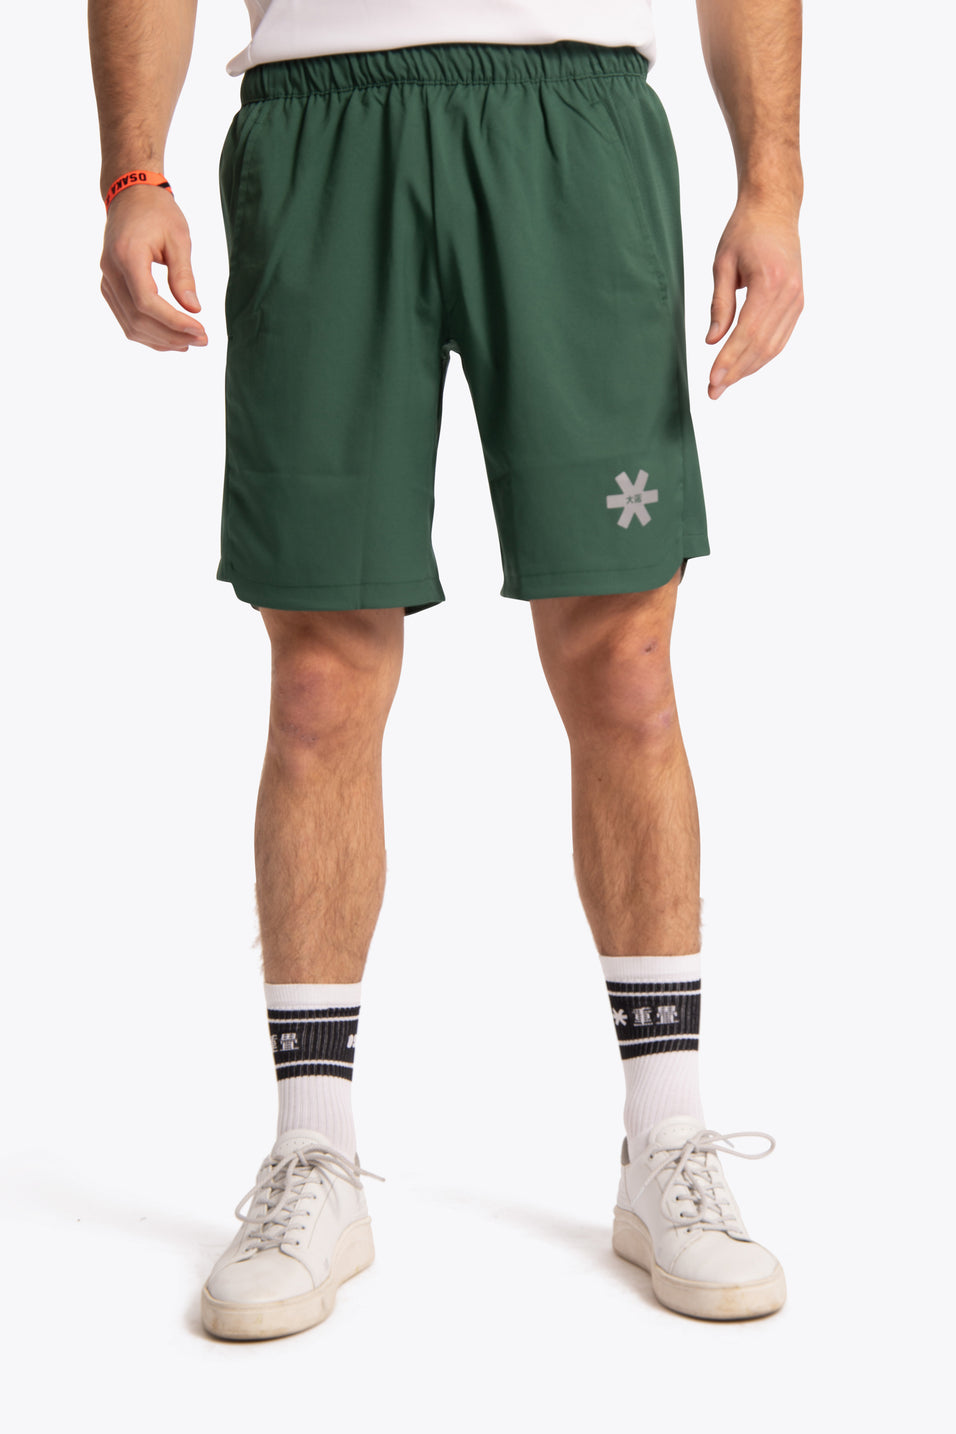 Osaka men training short green